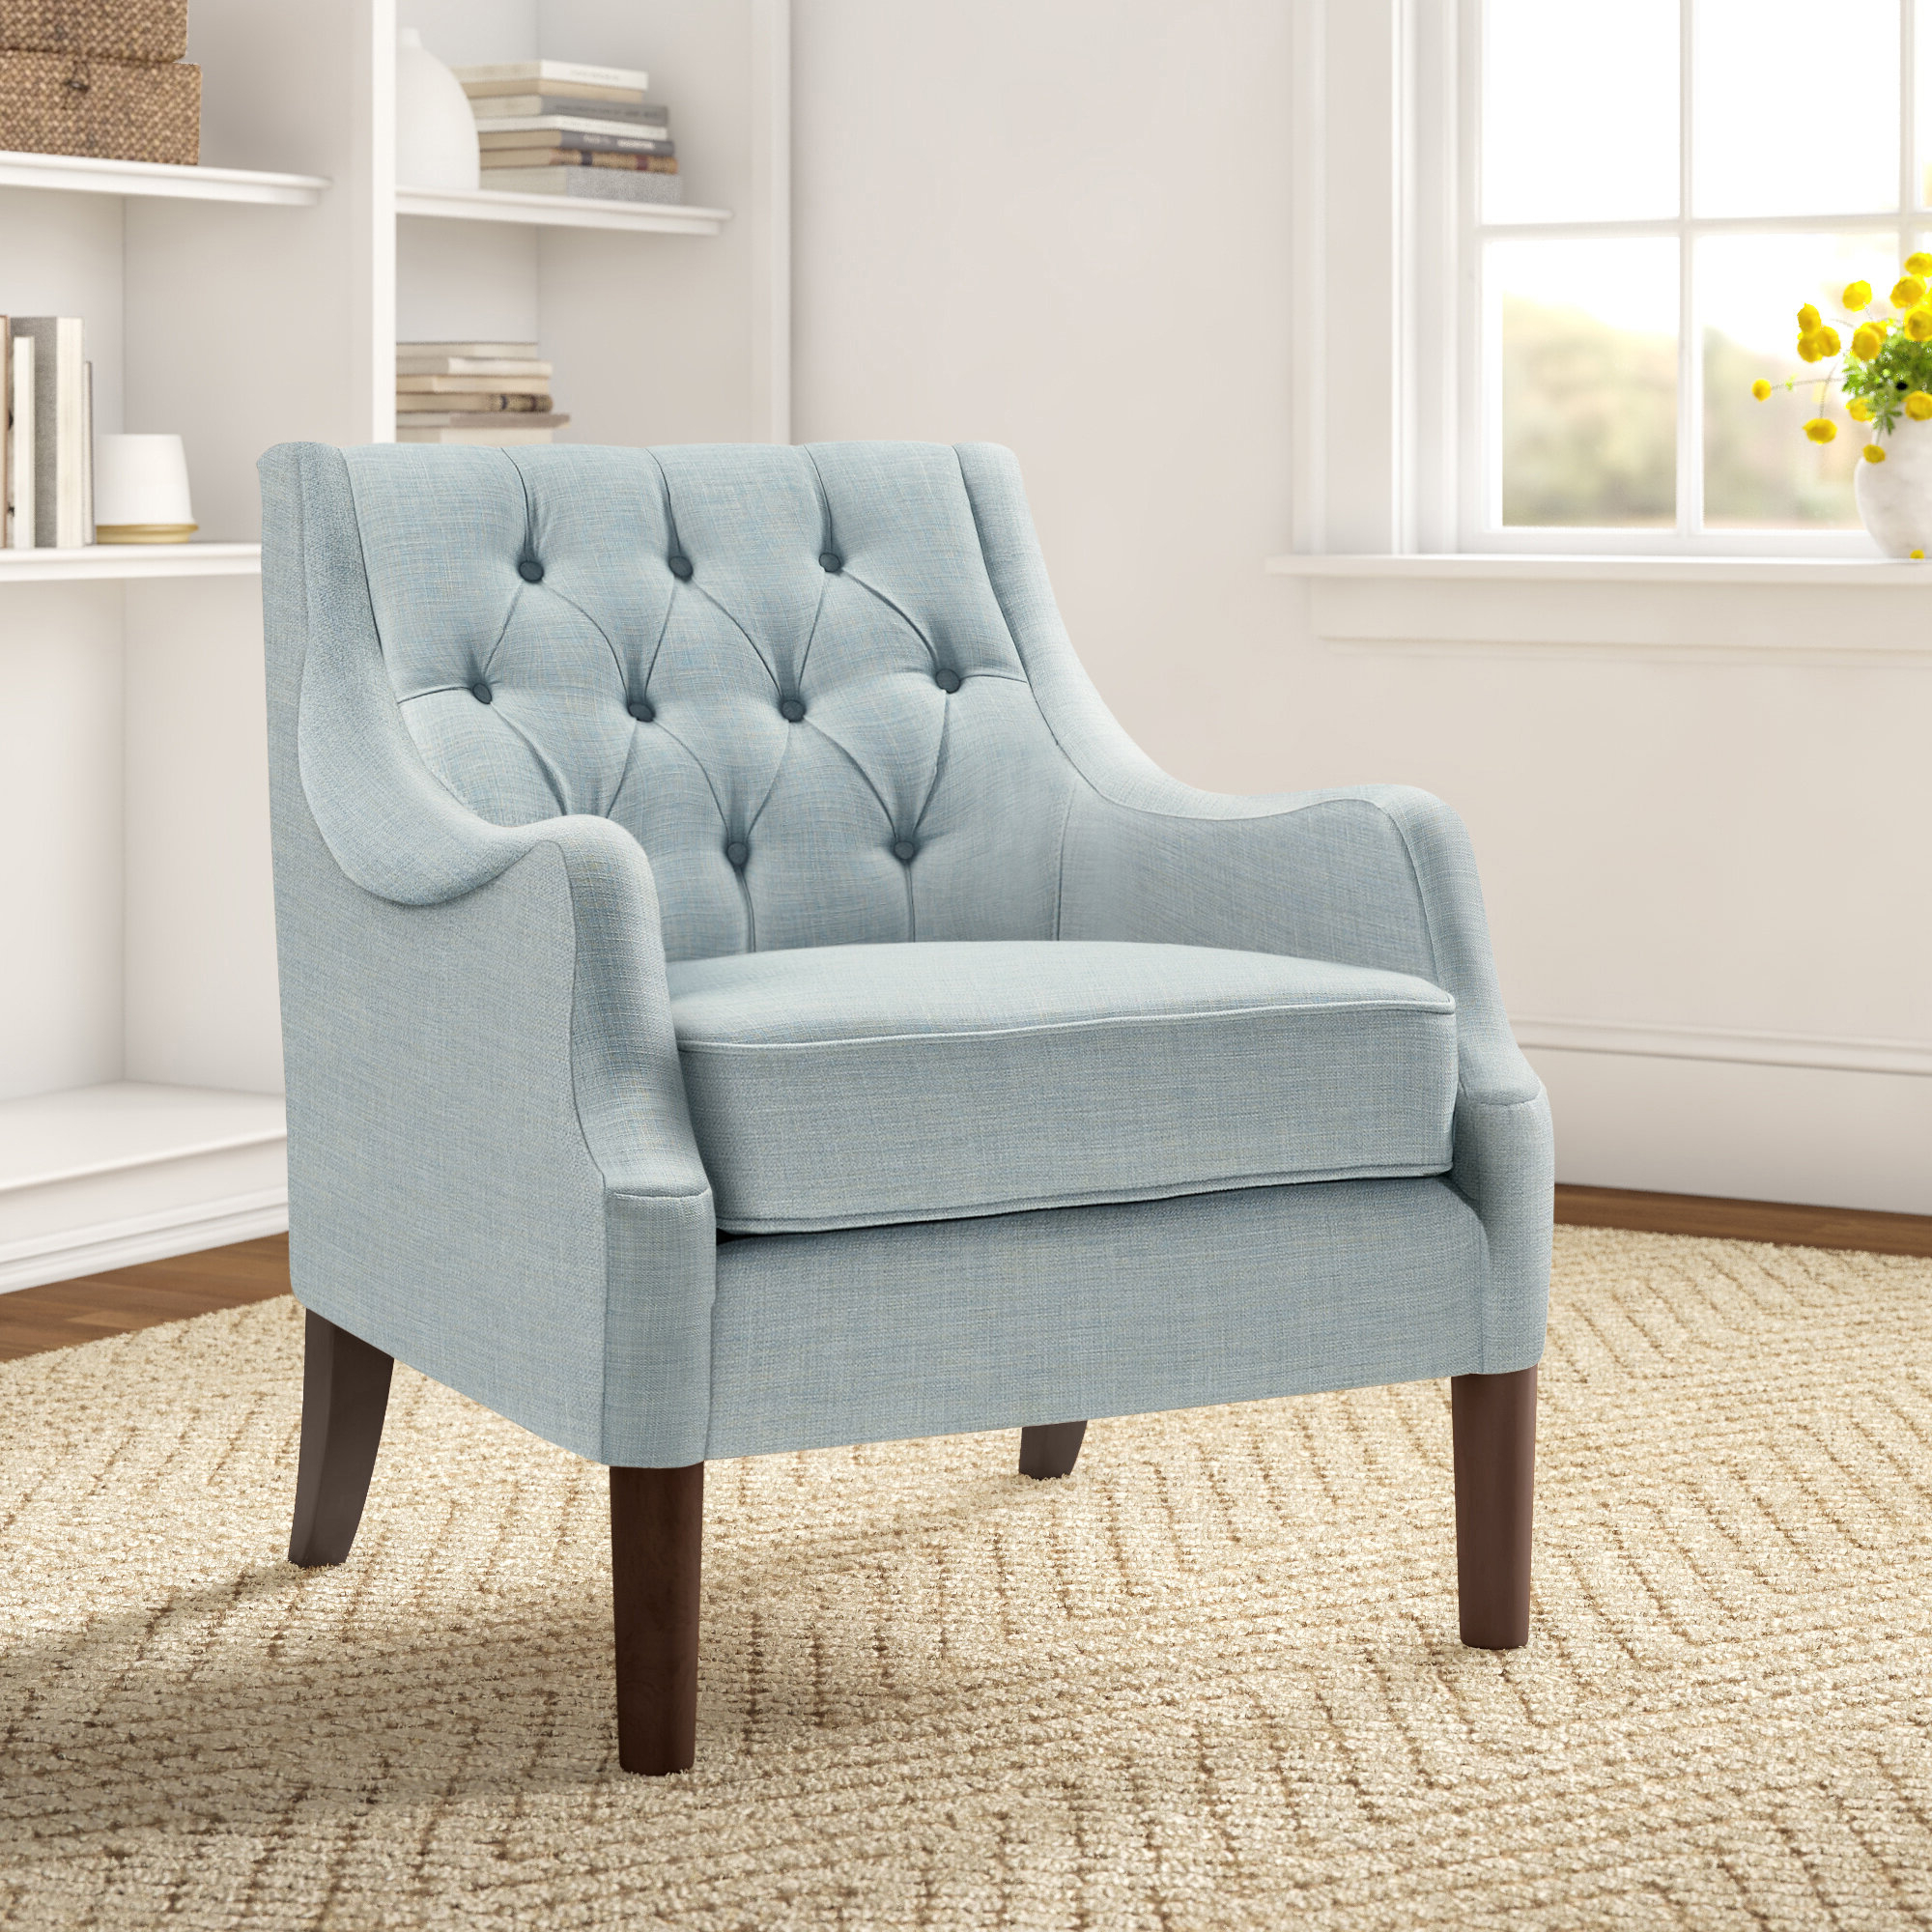 Widely Used Allis Tufted Polyester Blend Wingback Chairs For Galesville  (View 12 of 20)